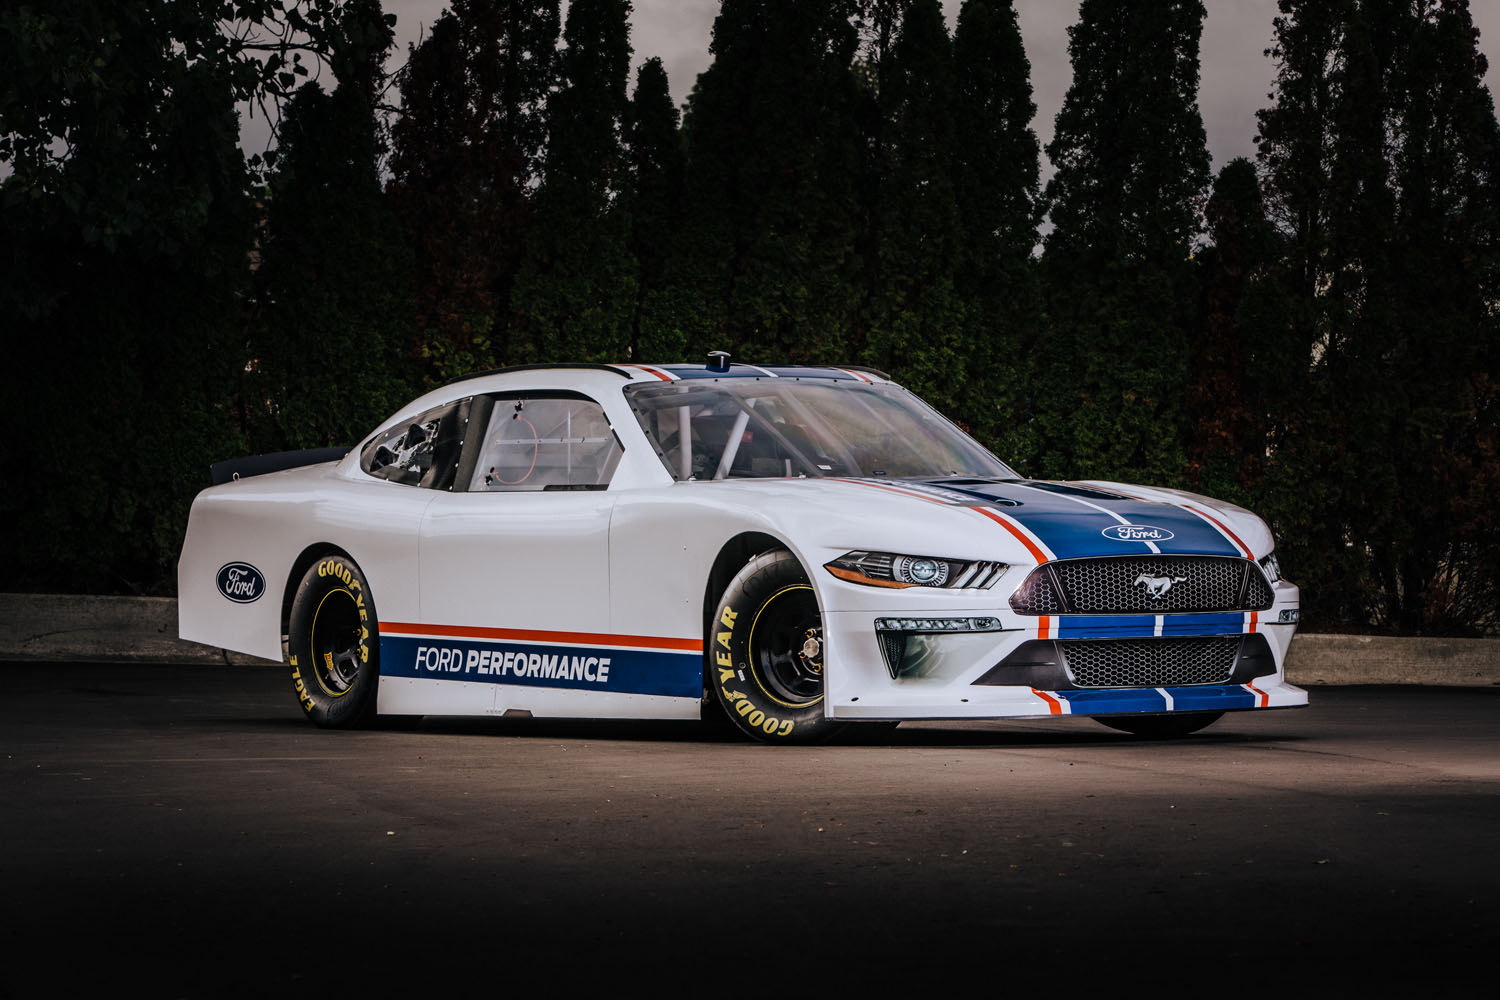 2020 Nascar Xfinity Series Mustang - Ford Authority